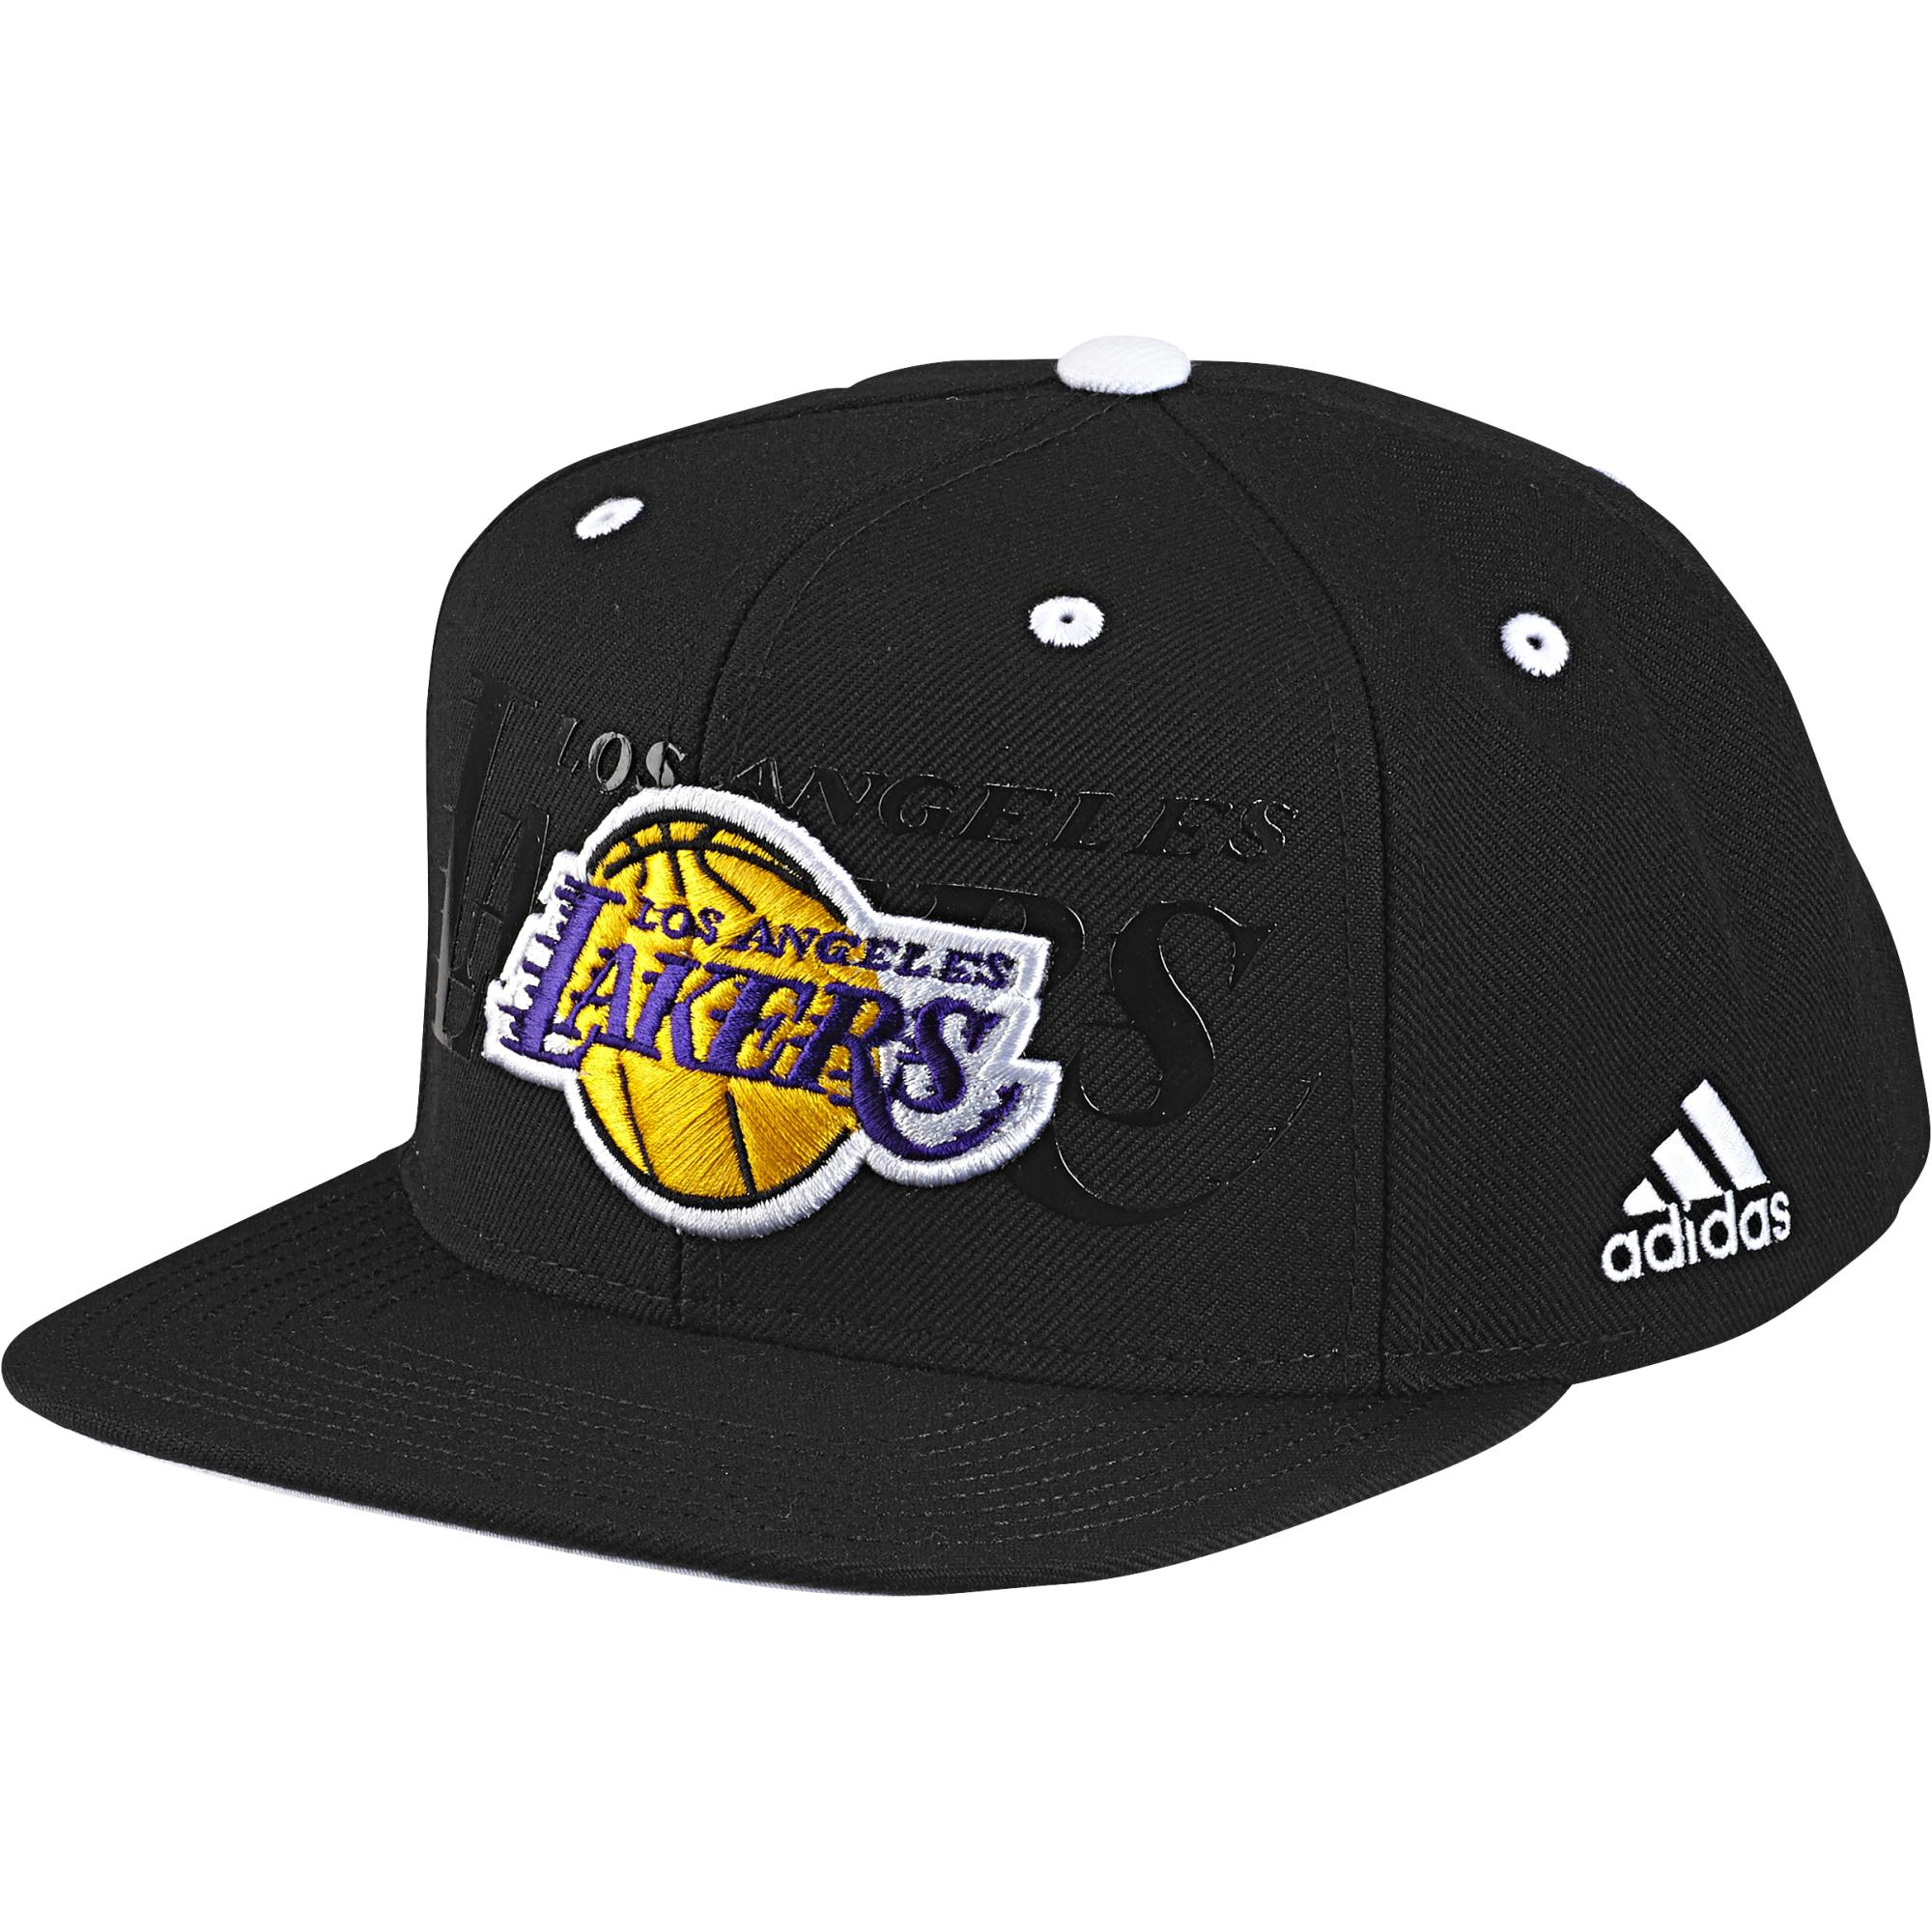 Adidas NBA Gorra Los Angeles Lakers Anthem Hat (negro) 763dfceaabf